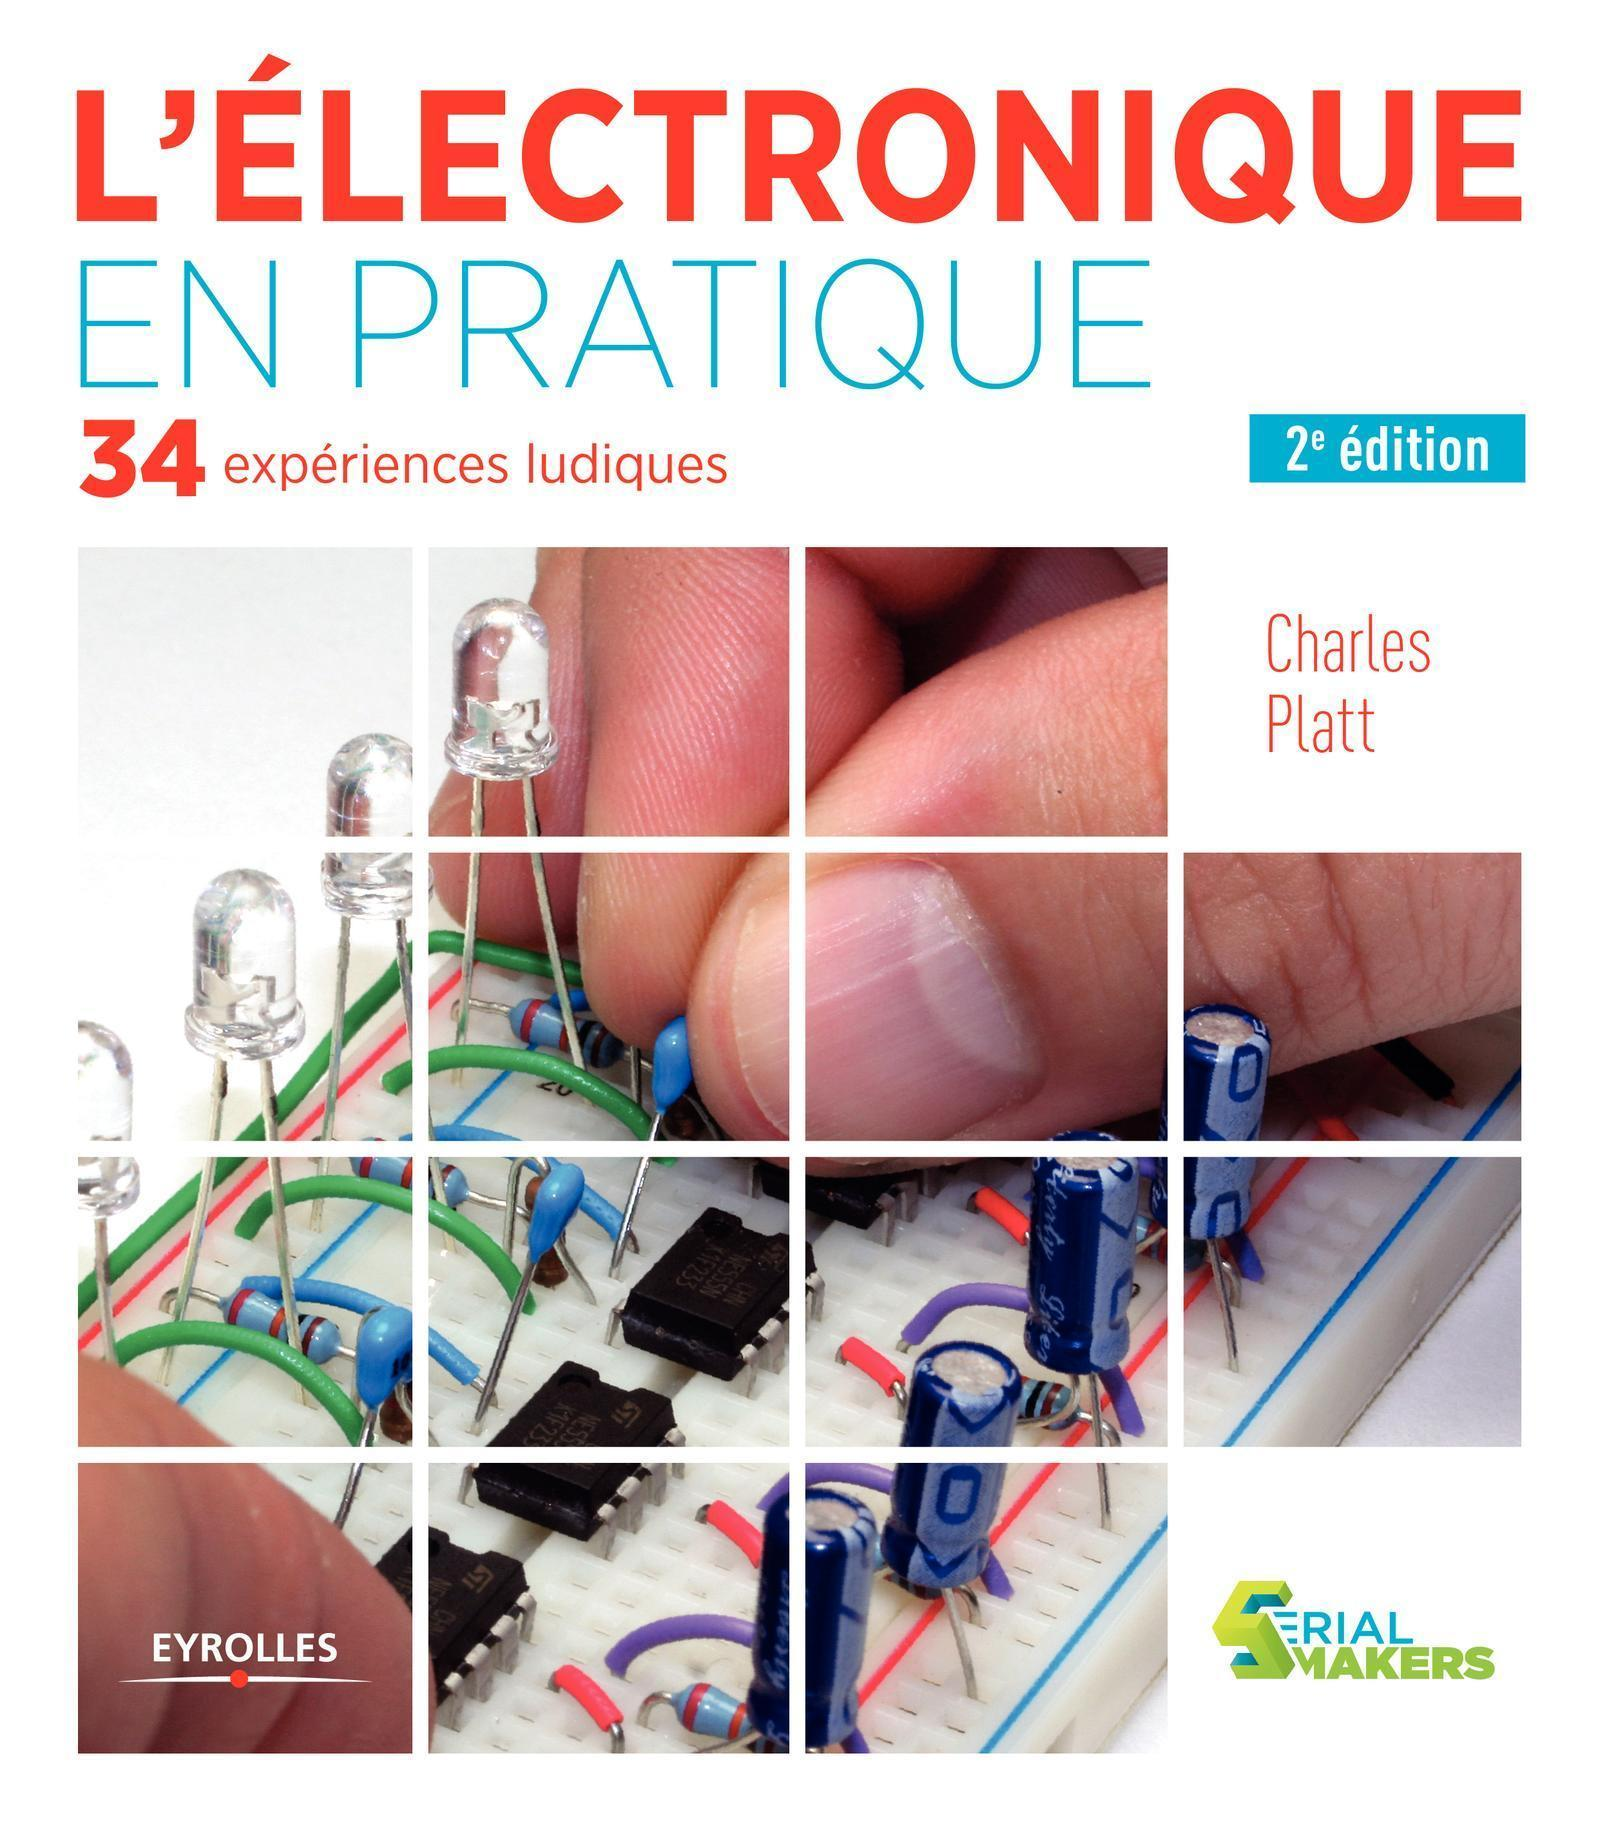 L ELECTRONIQUE EN PRATIQUE